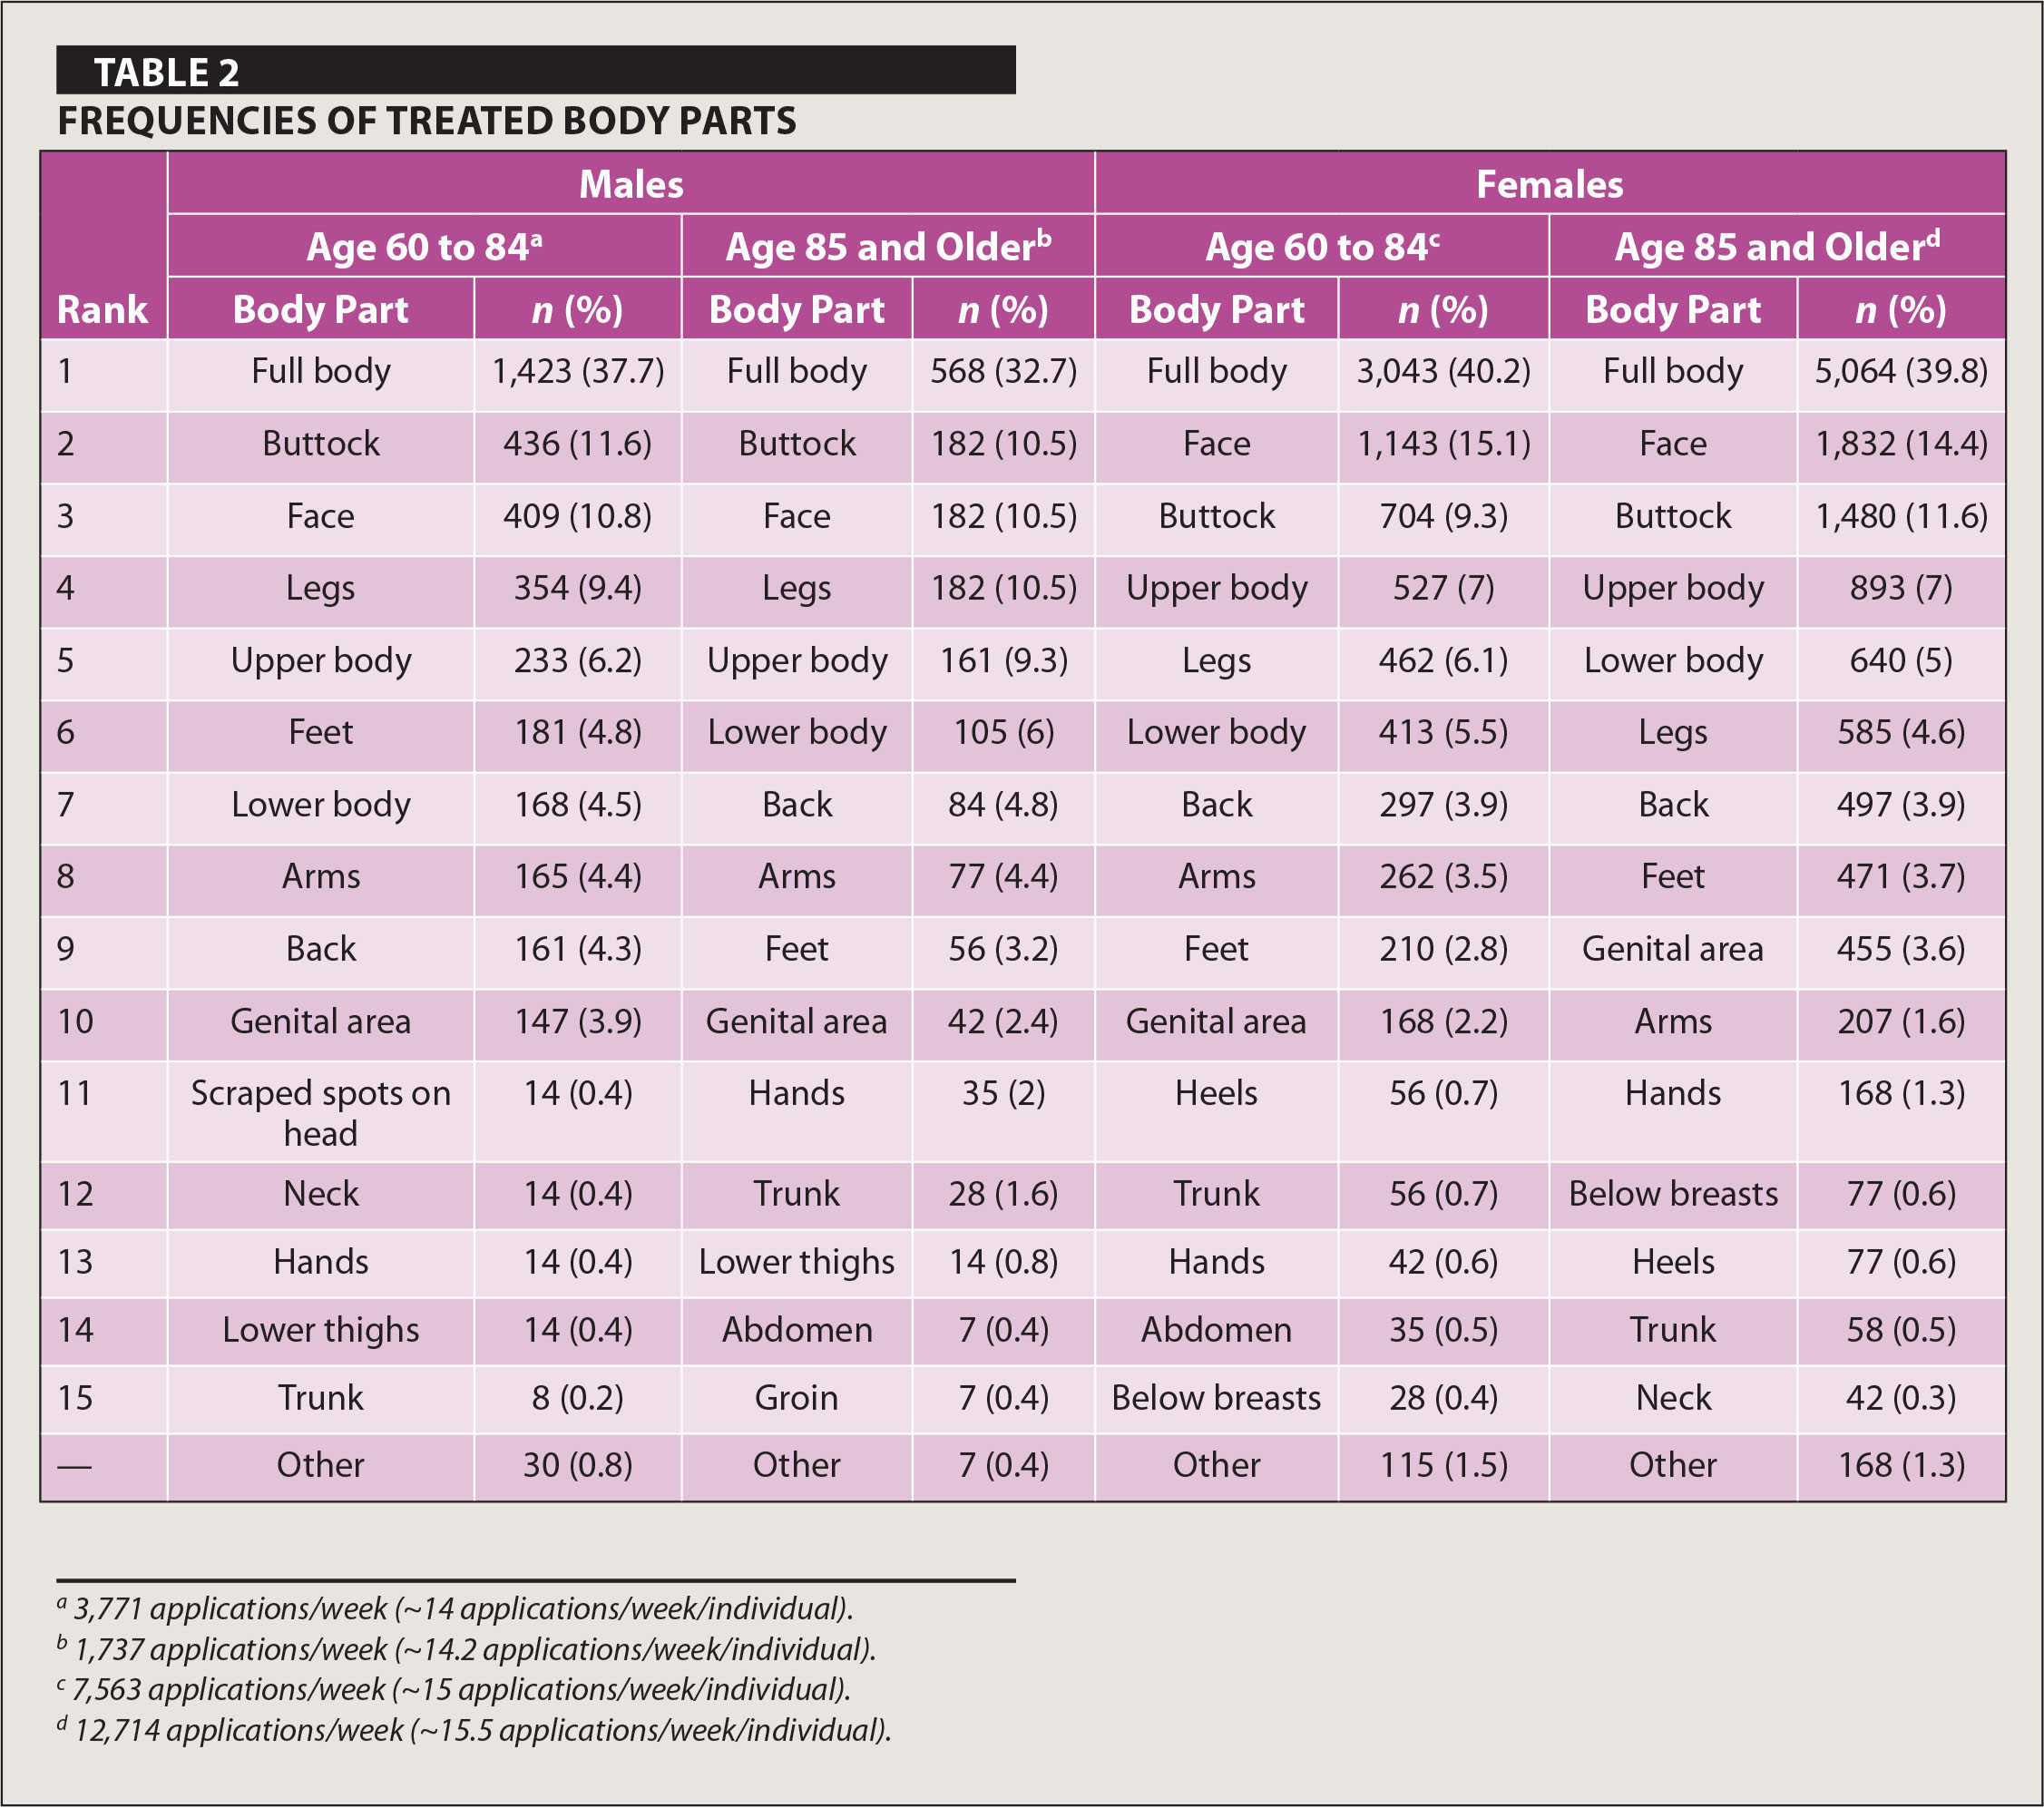 Frequencies of Treated Body Parts